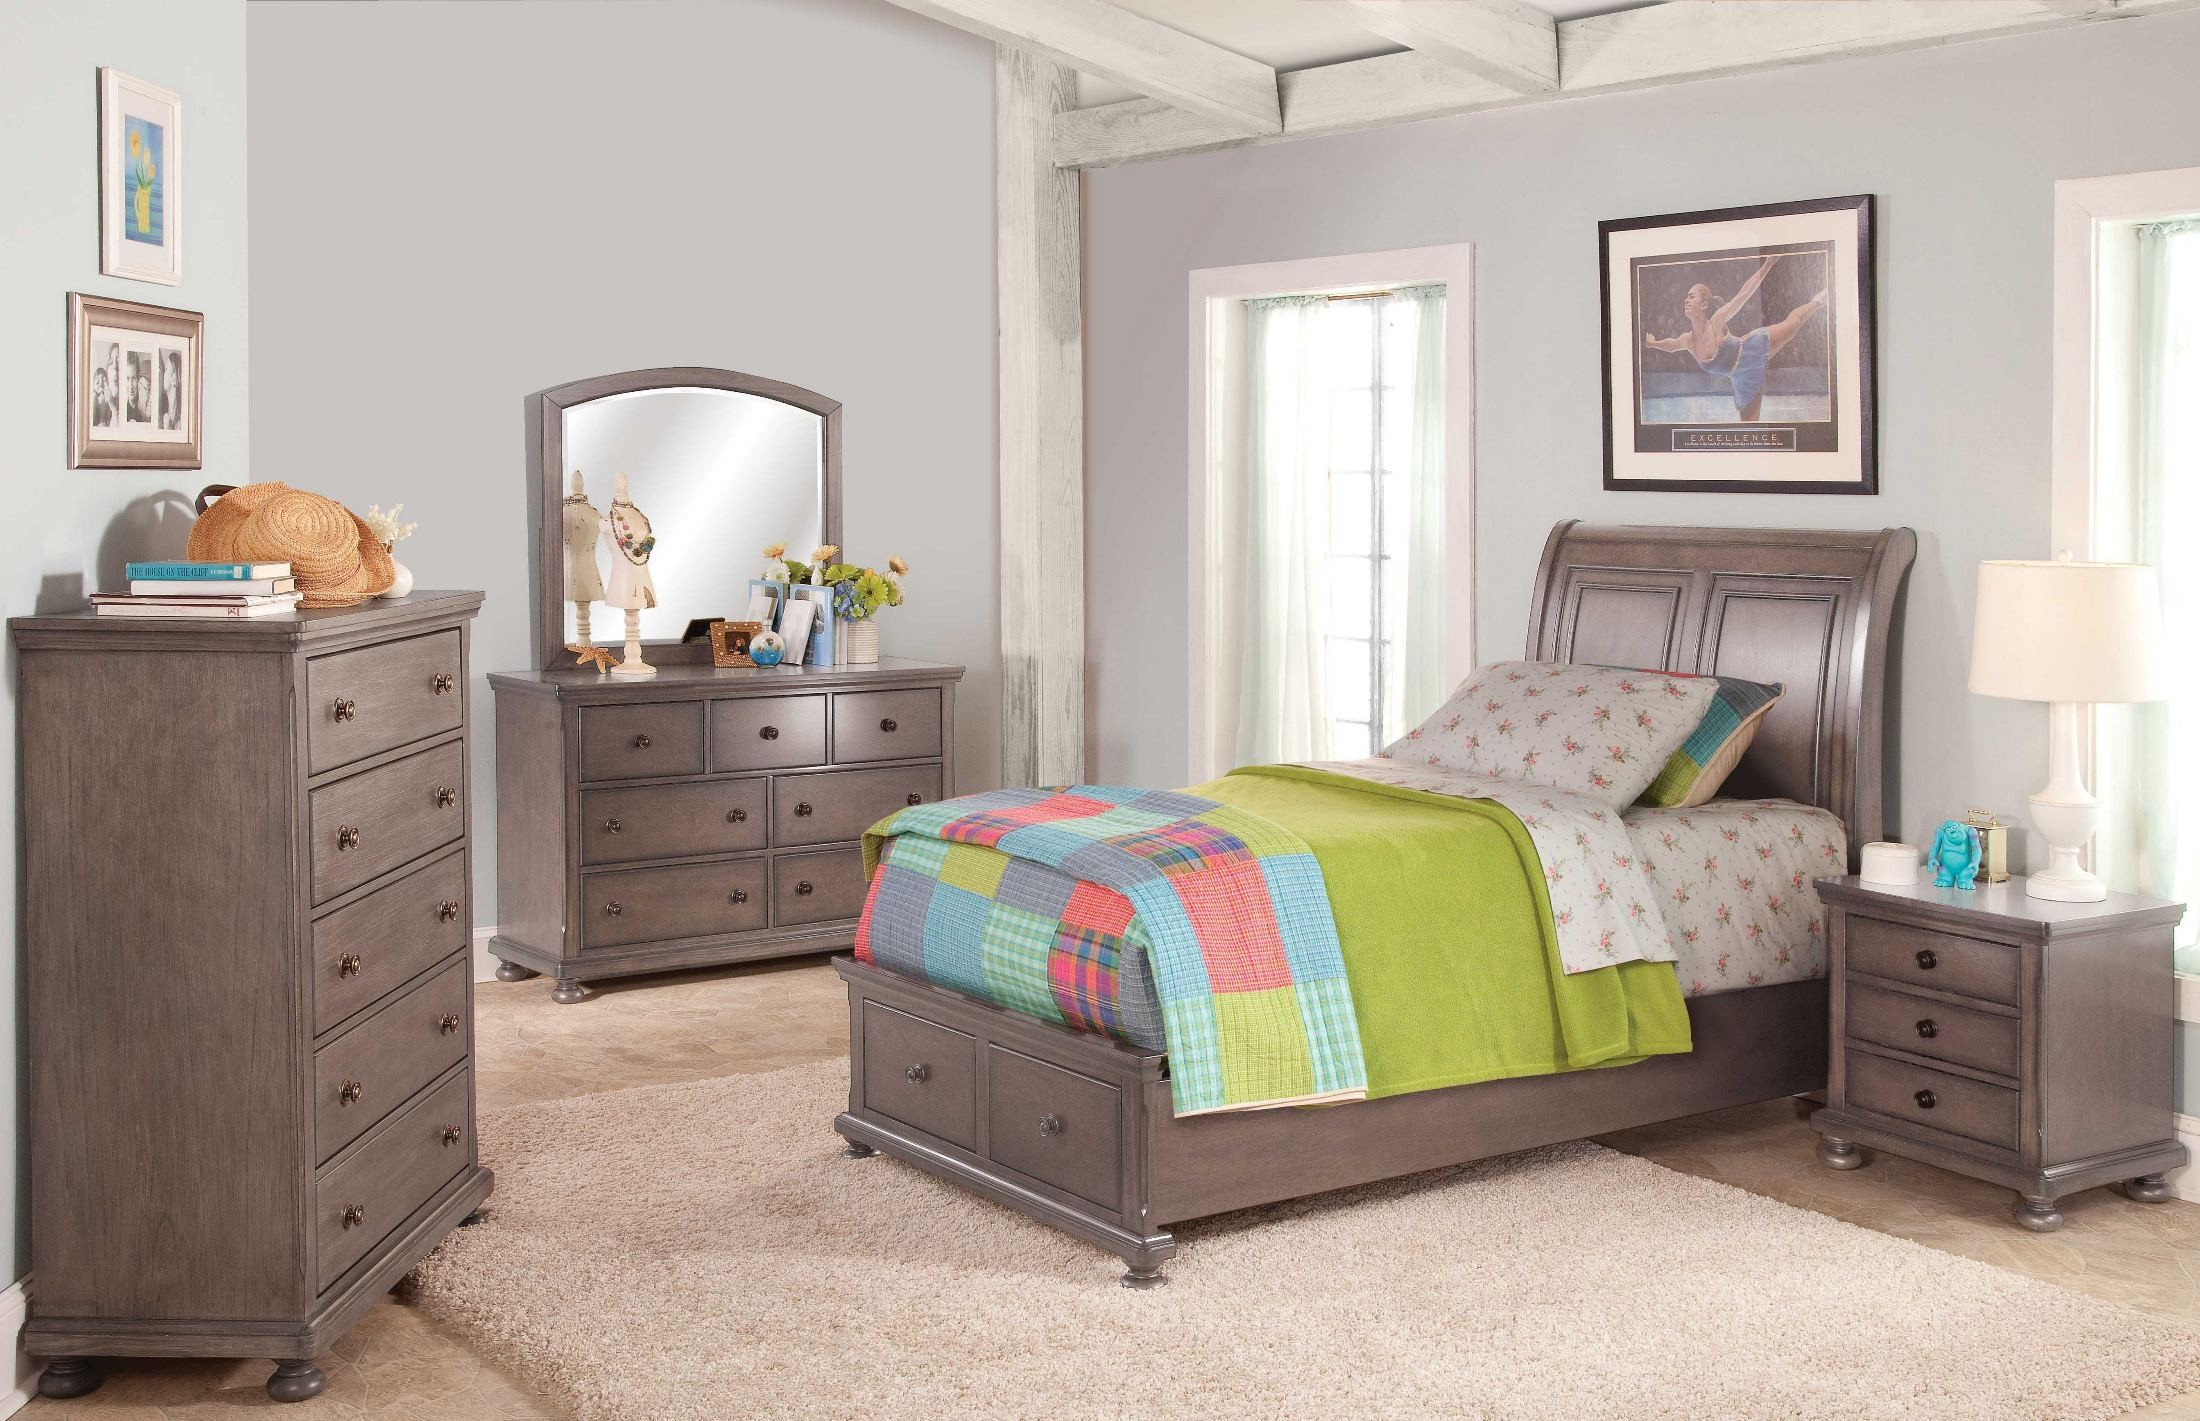 Allegra youth pewter youth sleigh storage bedroom set from new classic coleman furniture for Youth storage bedroom furniture